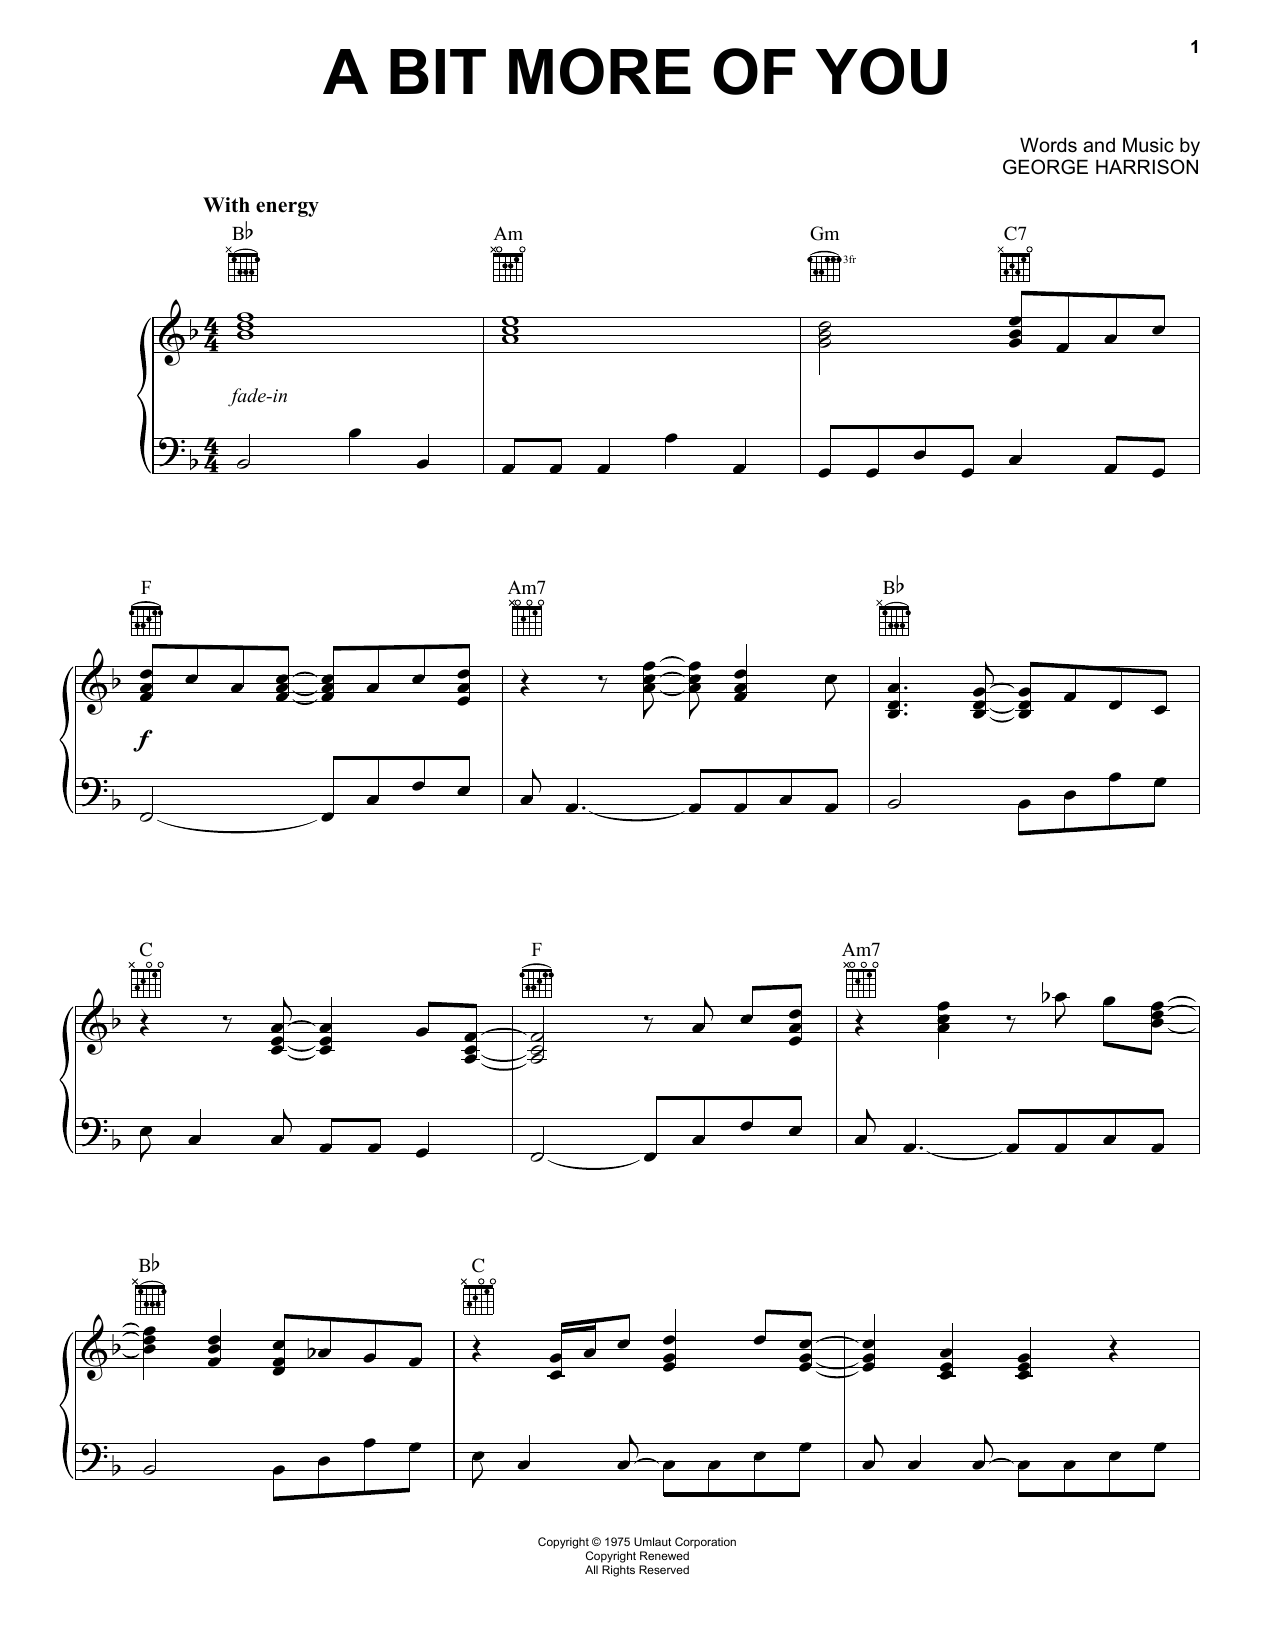 A Bit More Of You Sheet Music